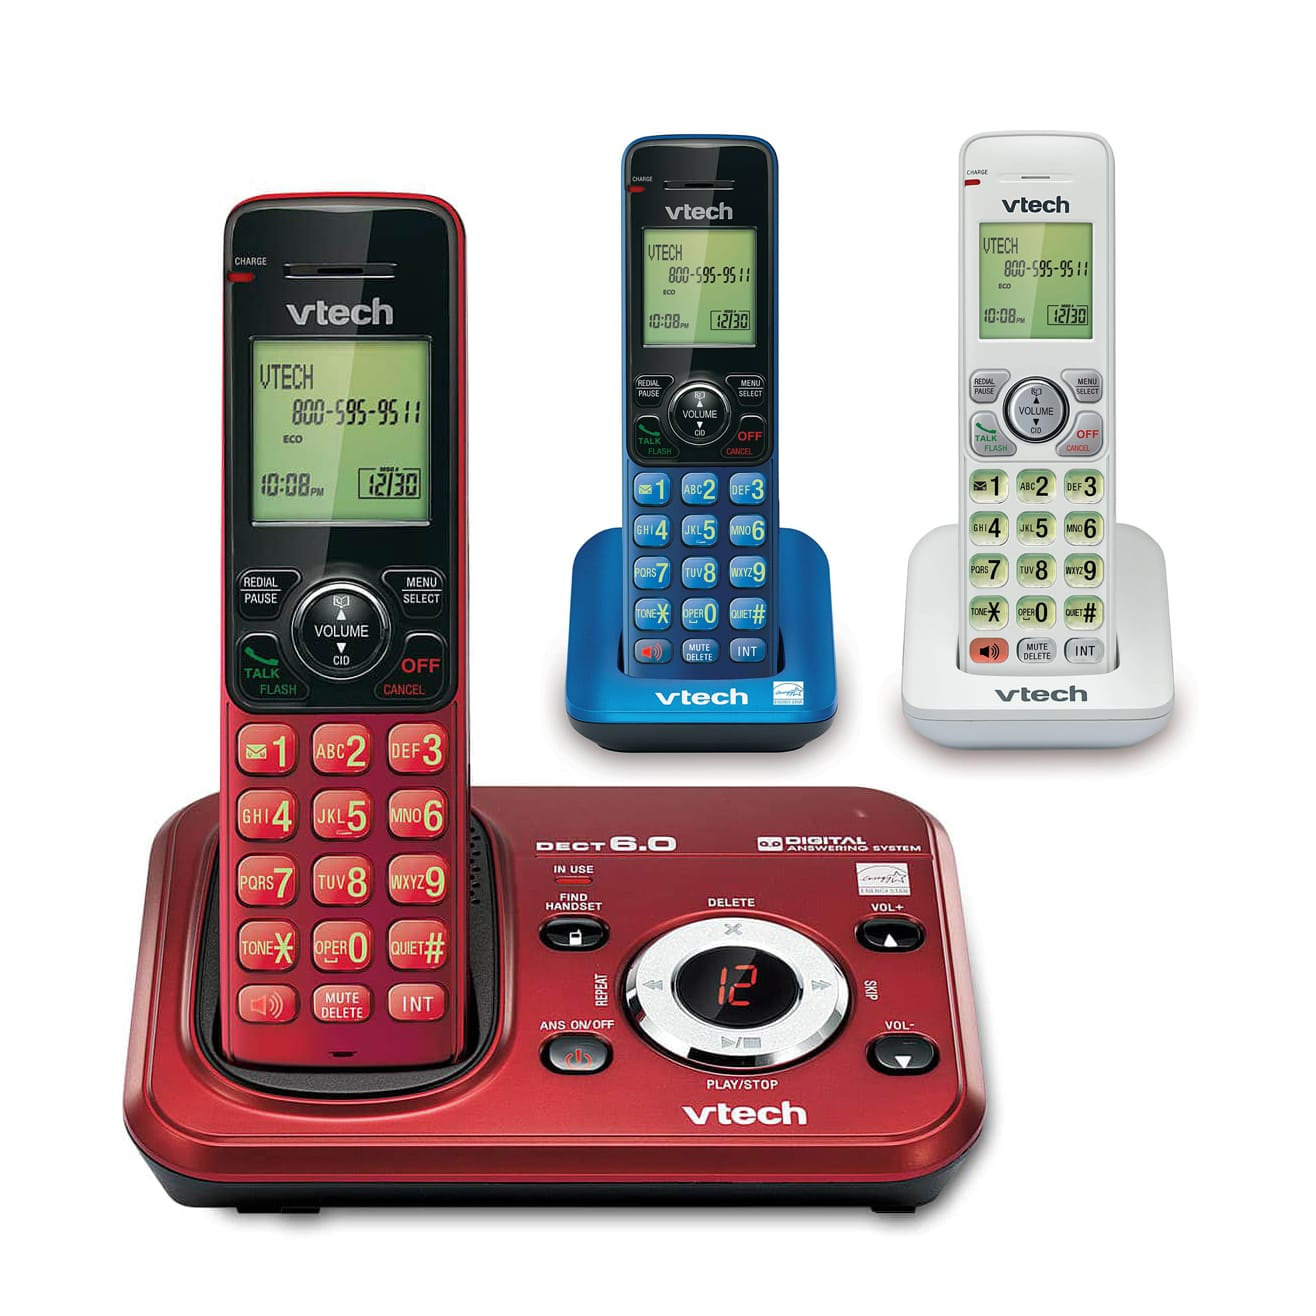 3 Handset FoneDeco Answering System with Caller ID Call Waiting